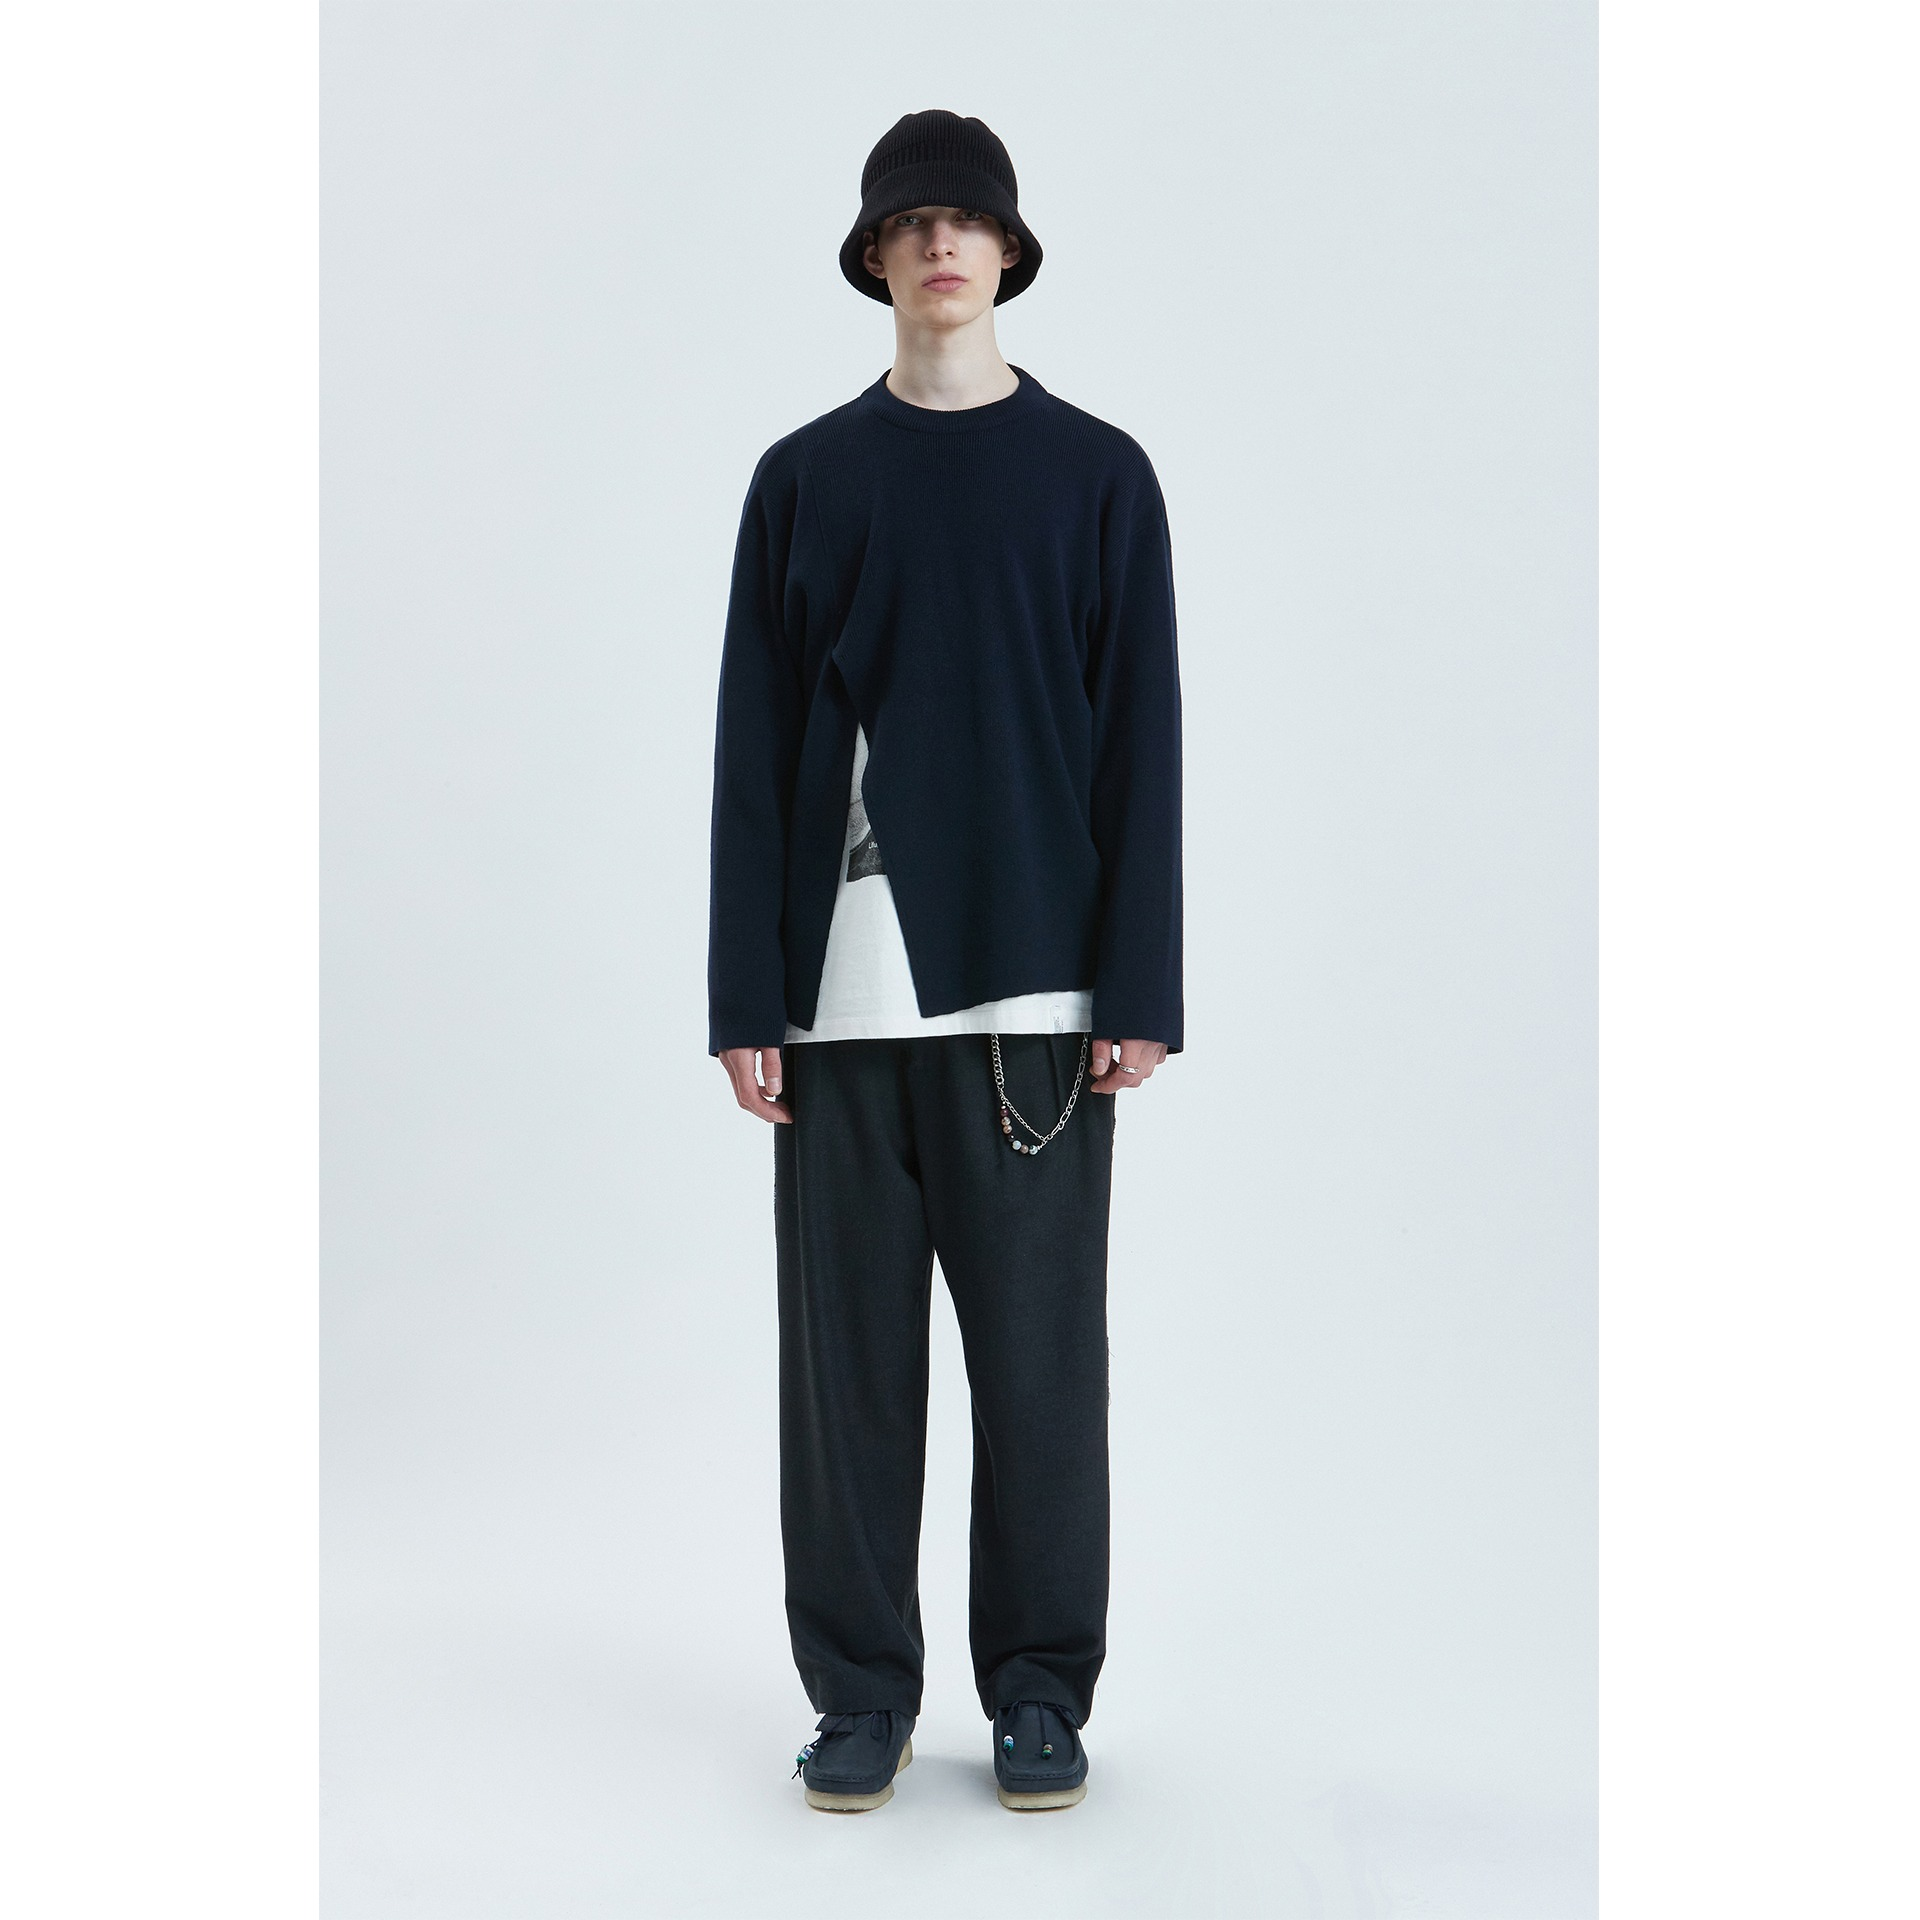 LIFUL SIDE SLIT KNIT SWEATER dark navy